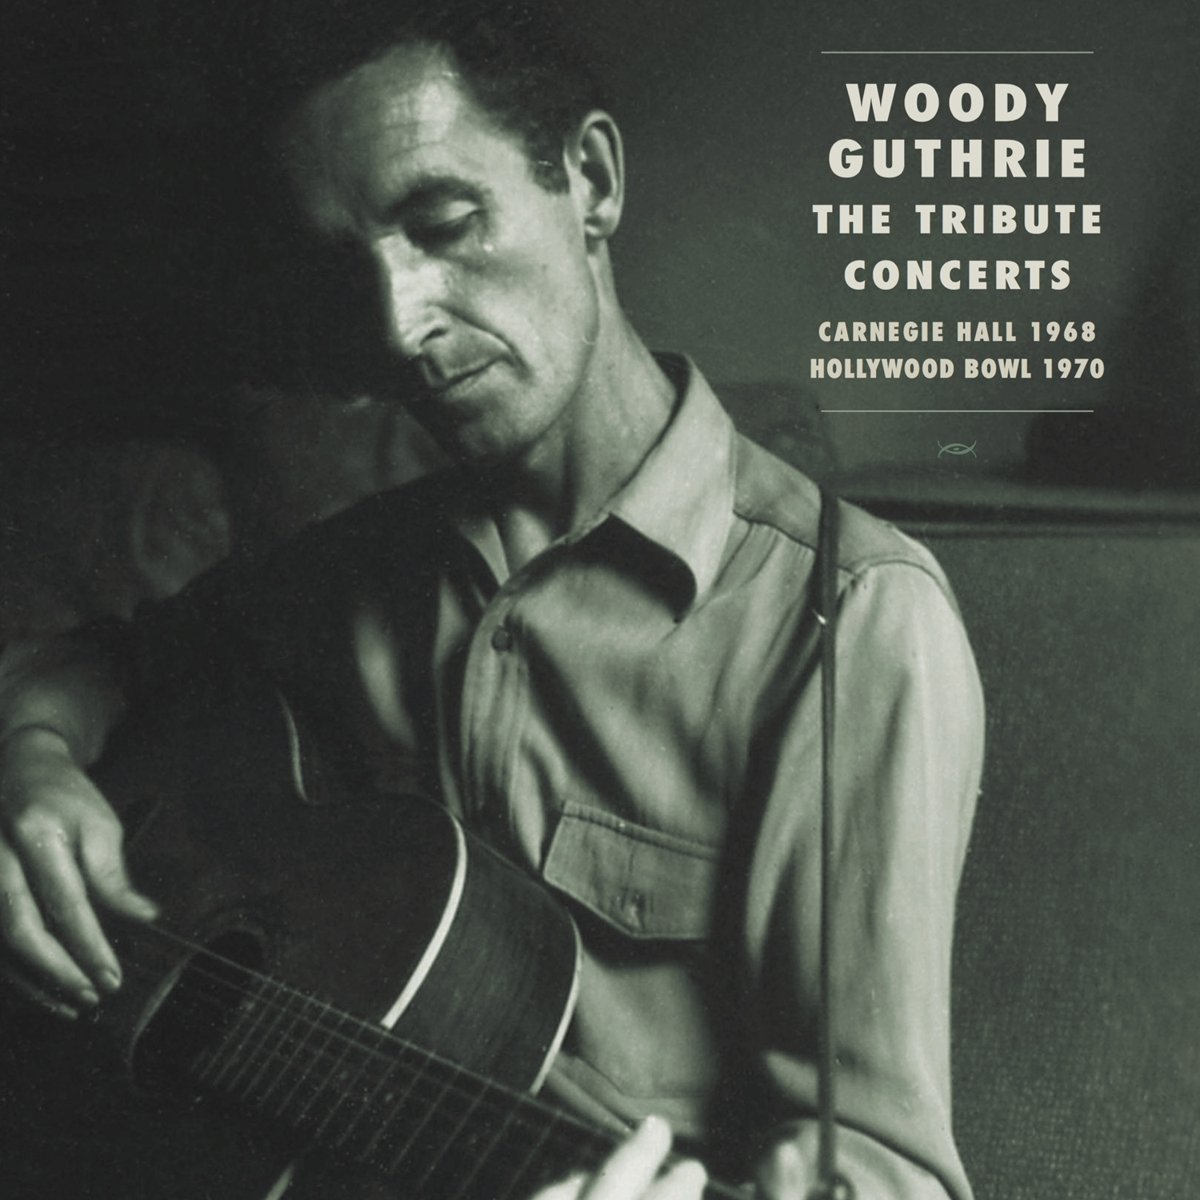 WOODY GUTHRIE: THE TRIBUTE CONCERTS                                                                                                                                                                                                                                                                                                                                                                                                <span class=